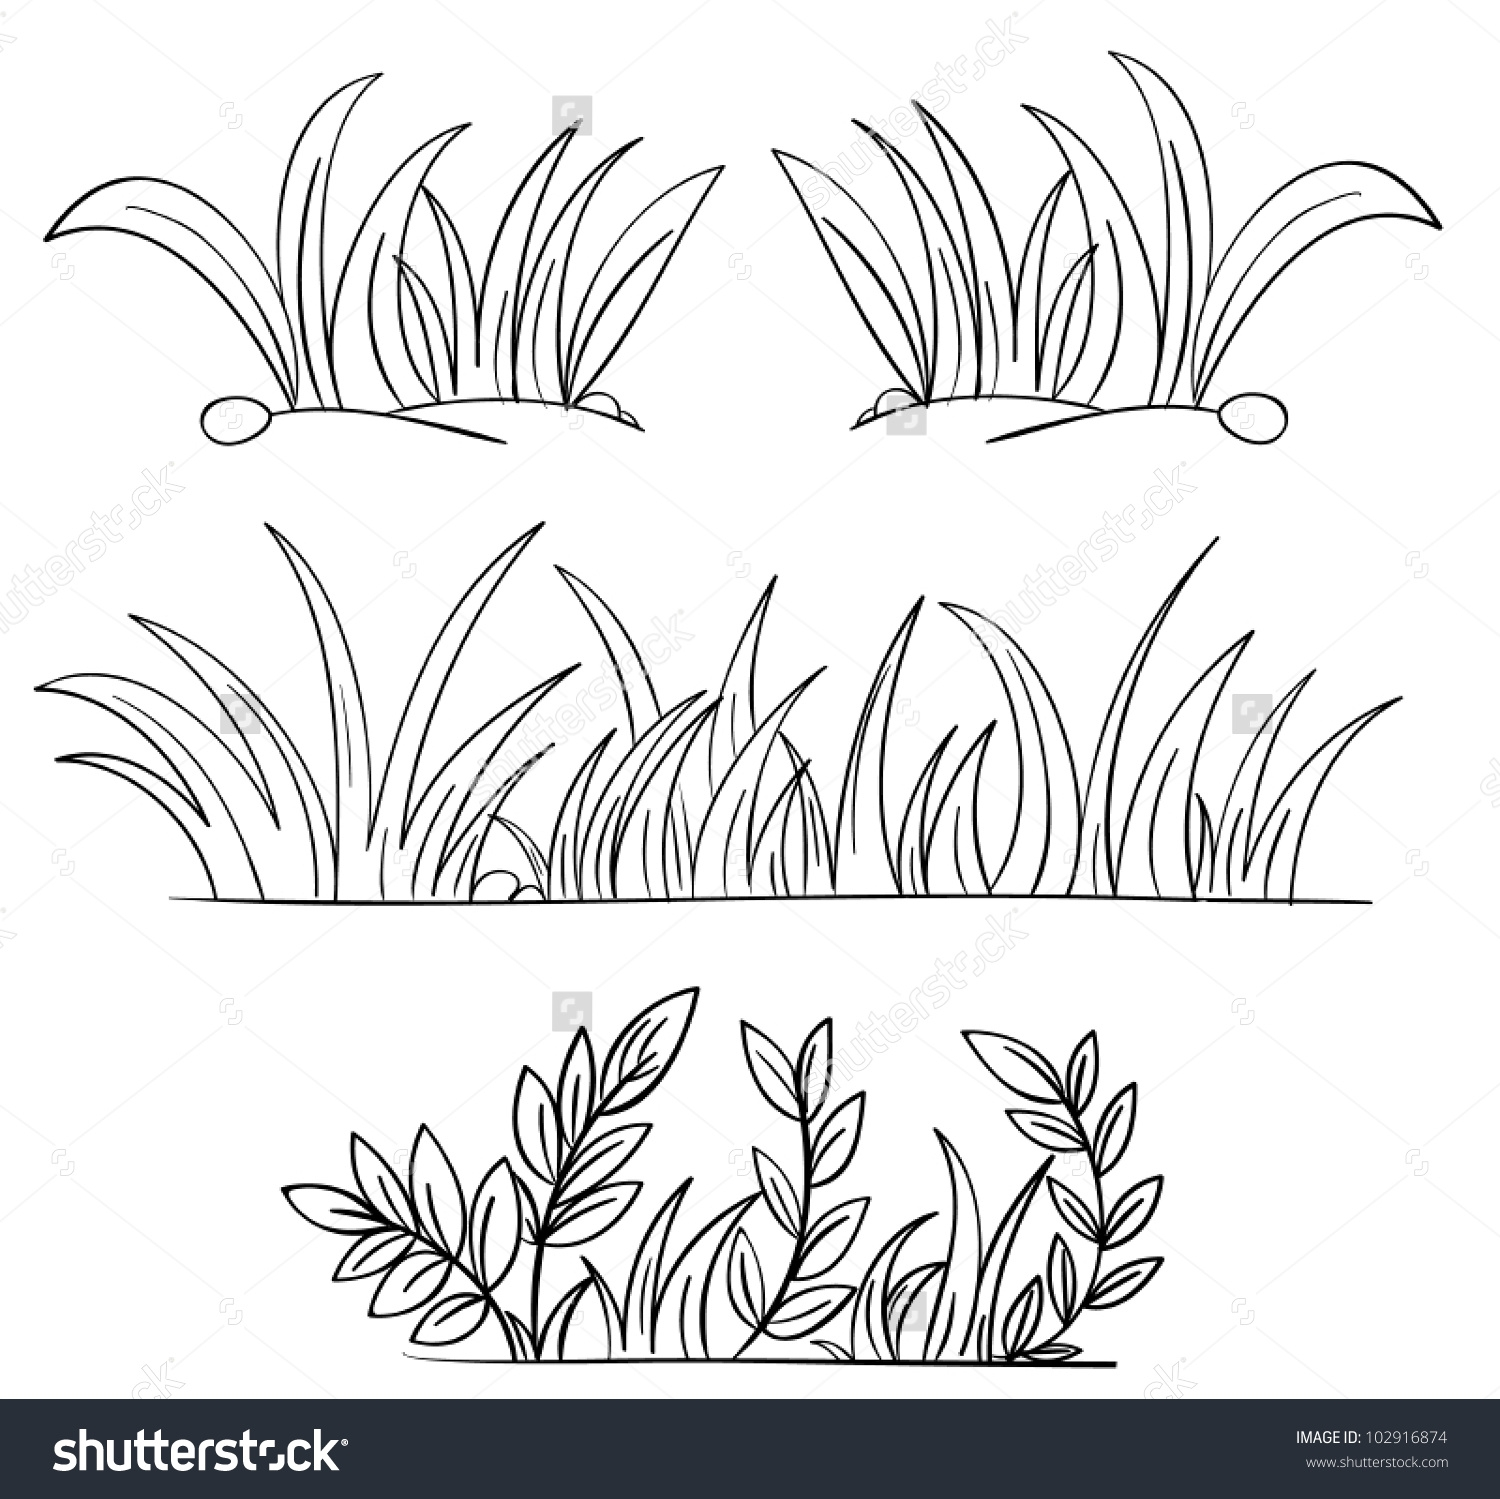 Black and white grass clipart graphic freeuse download Grass clipart black and white Inspirational grass clipart black and ... graphic freeuse download